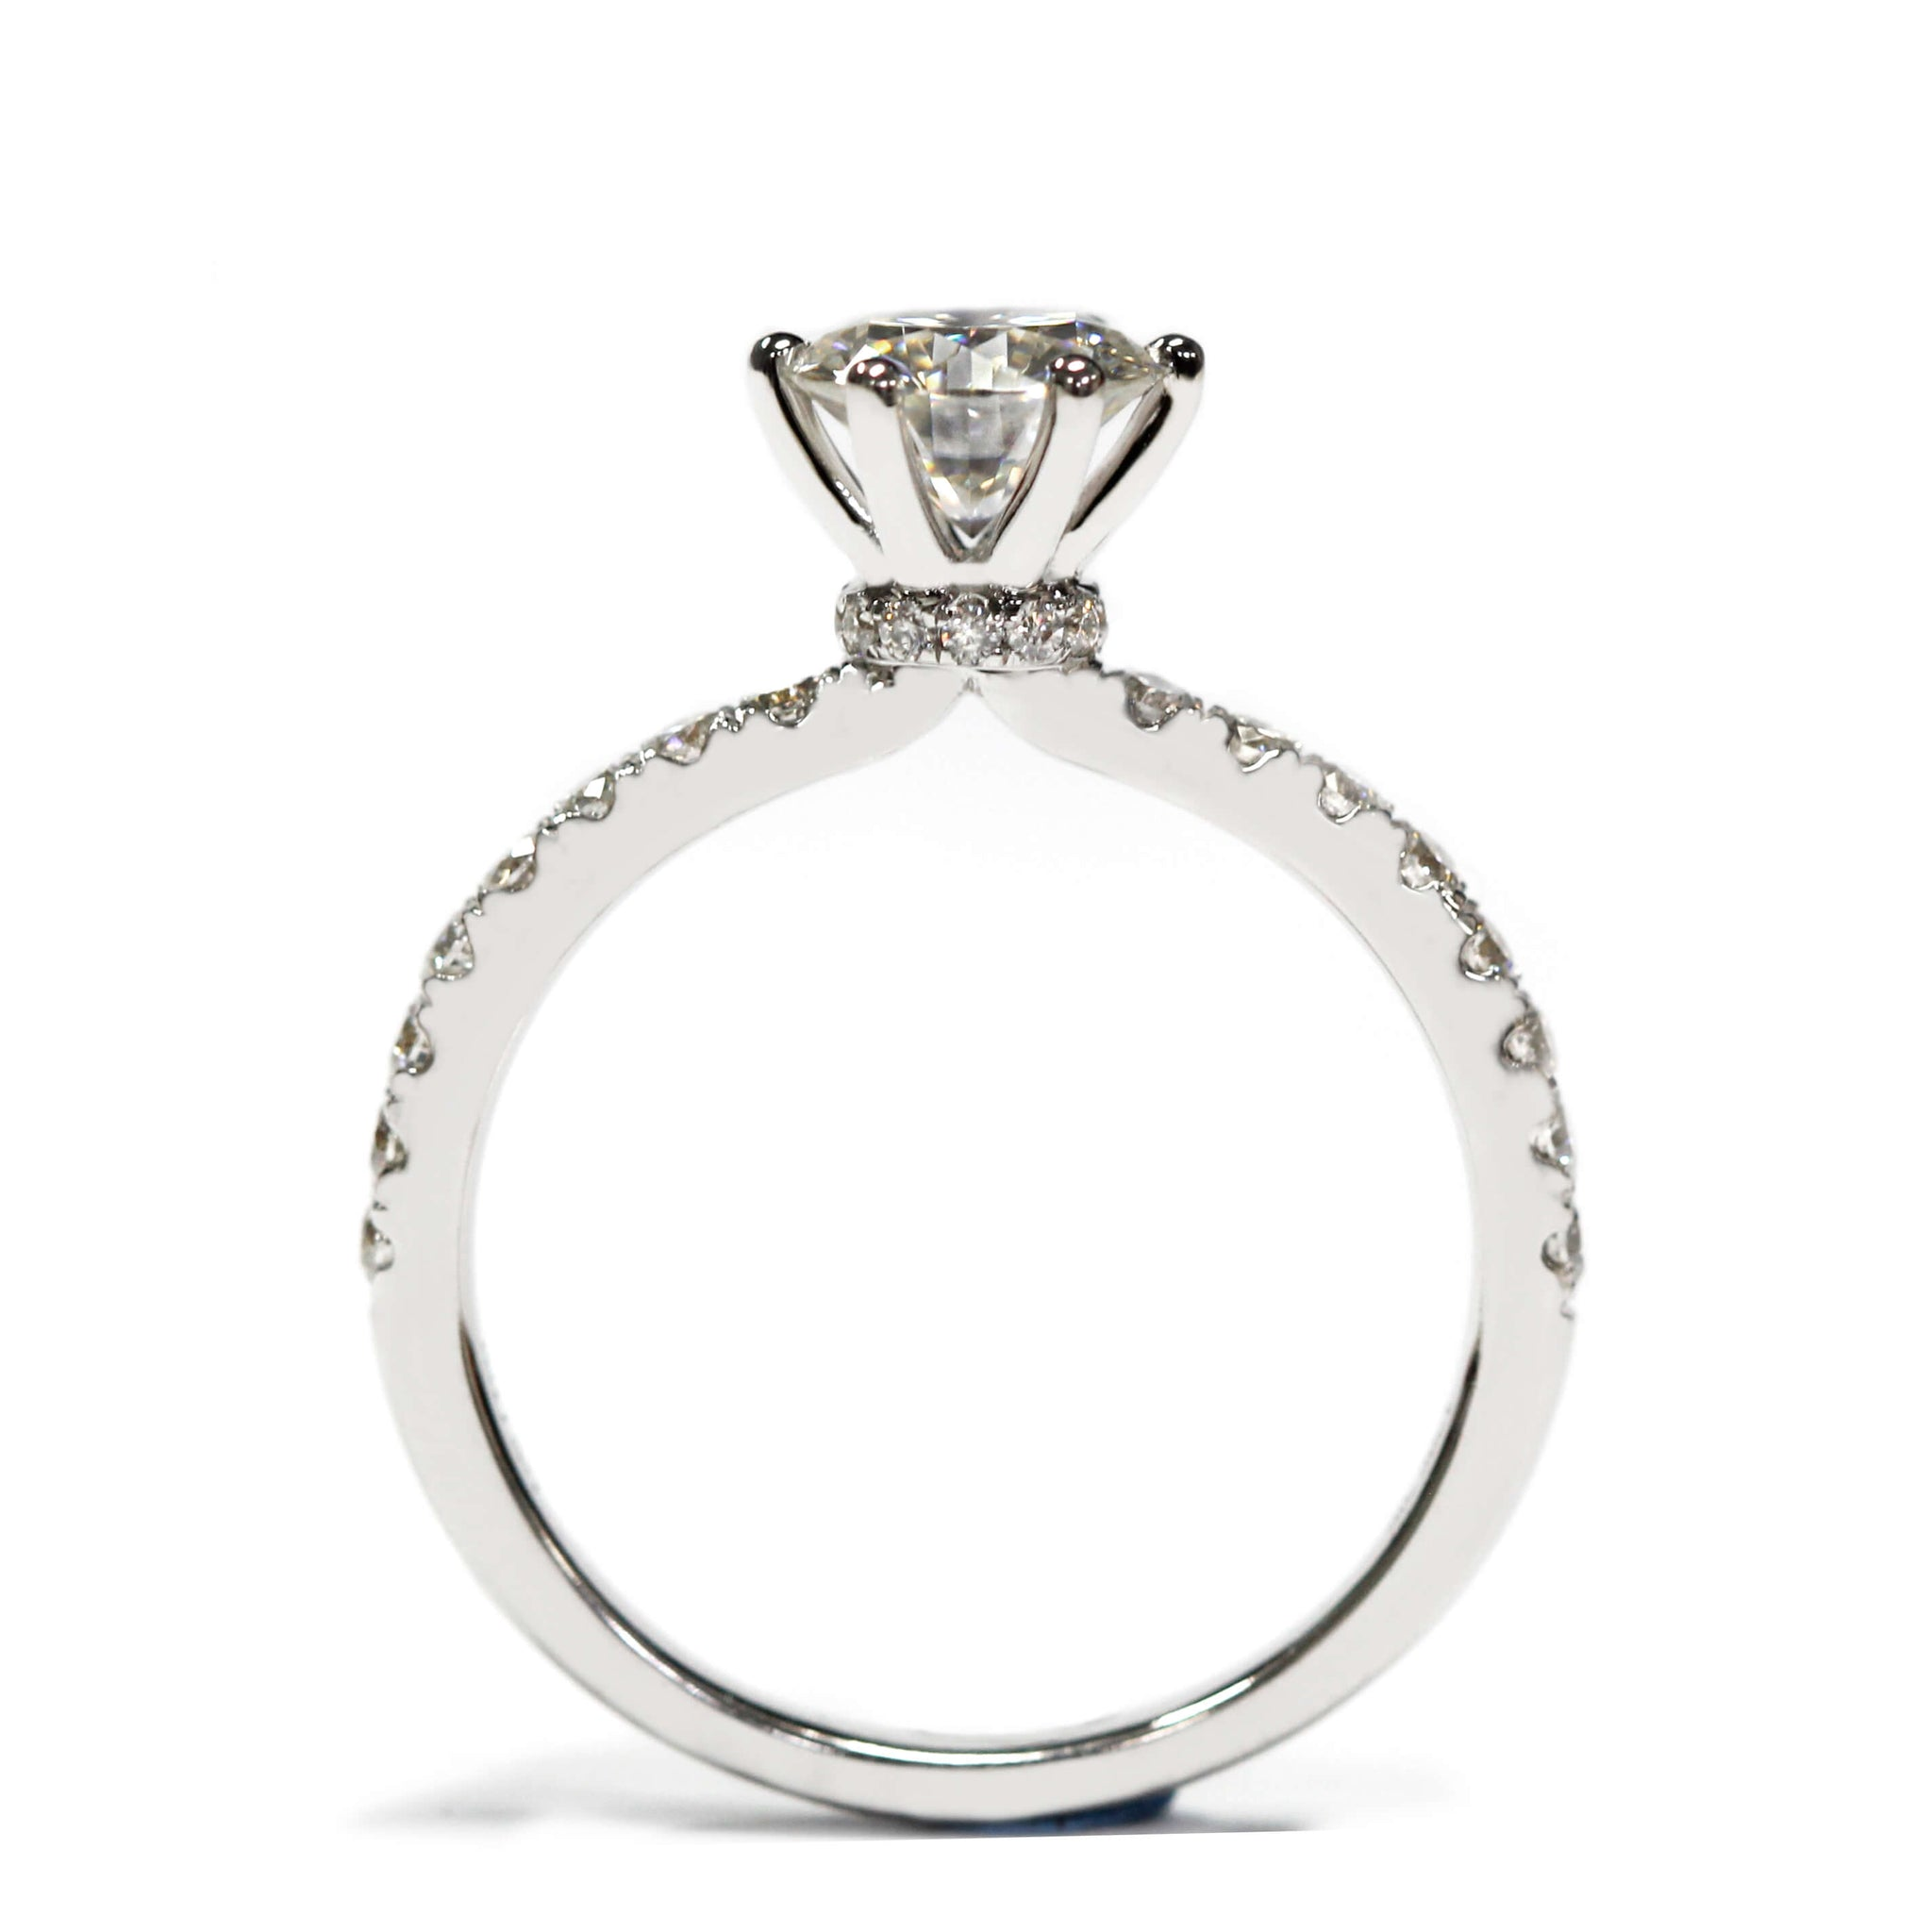 1 Carat Moissanite 6 Prong Crown Setting with Accent Stones